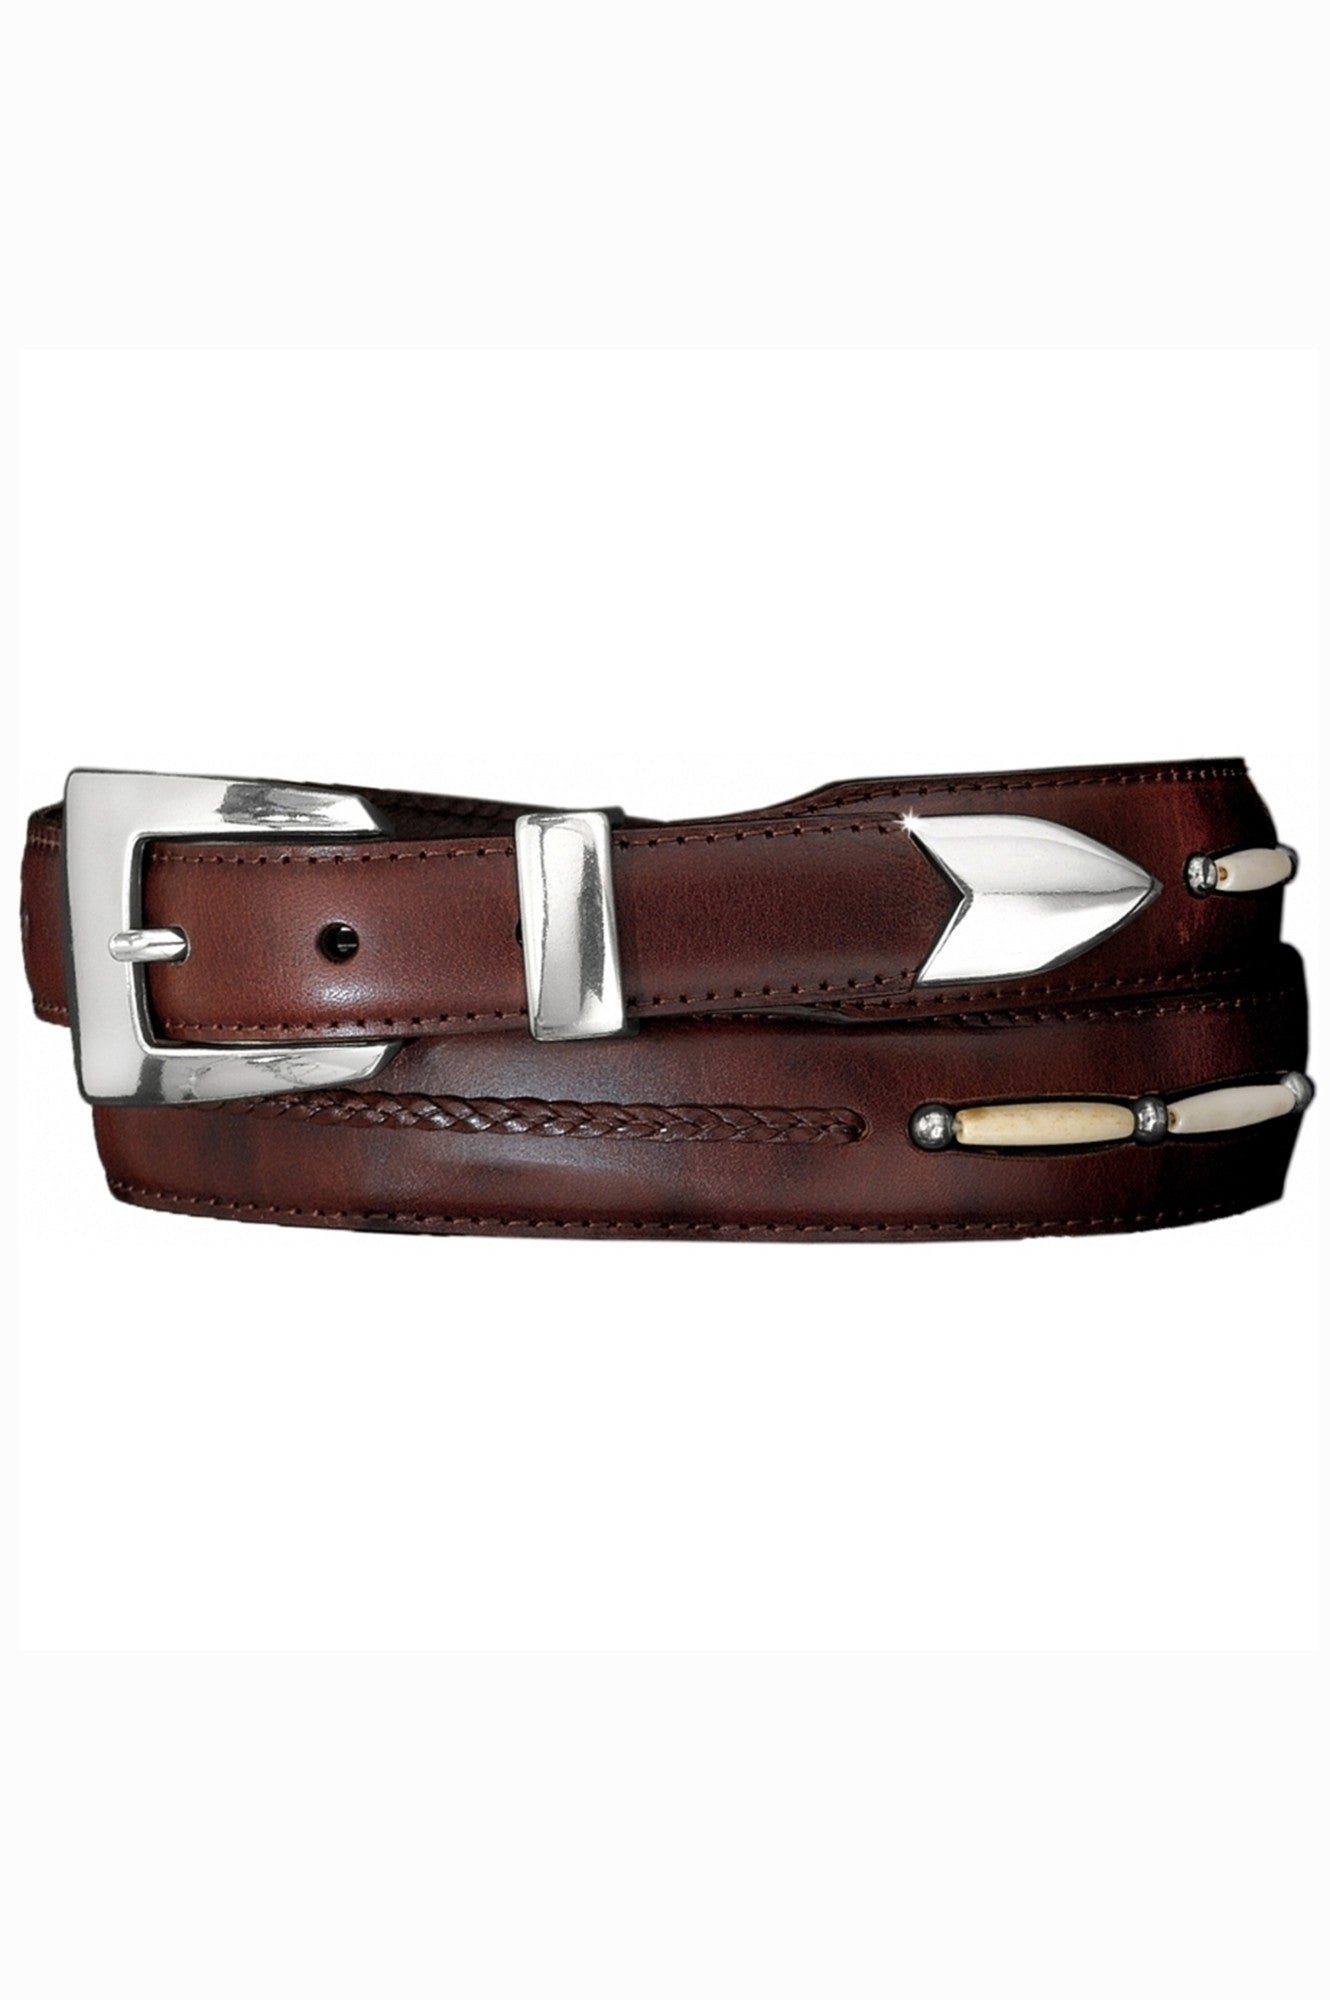 brown leather, mens belts, leather belts, brighton belts, western style leather belt, mens leather belts, brighton leather belts, western style